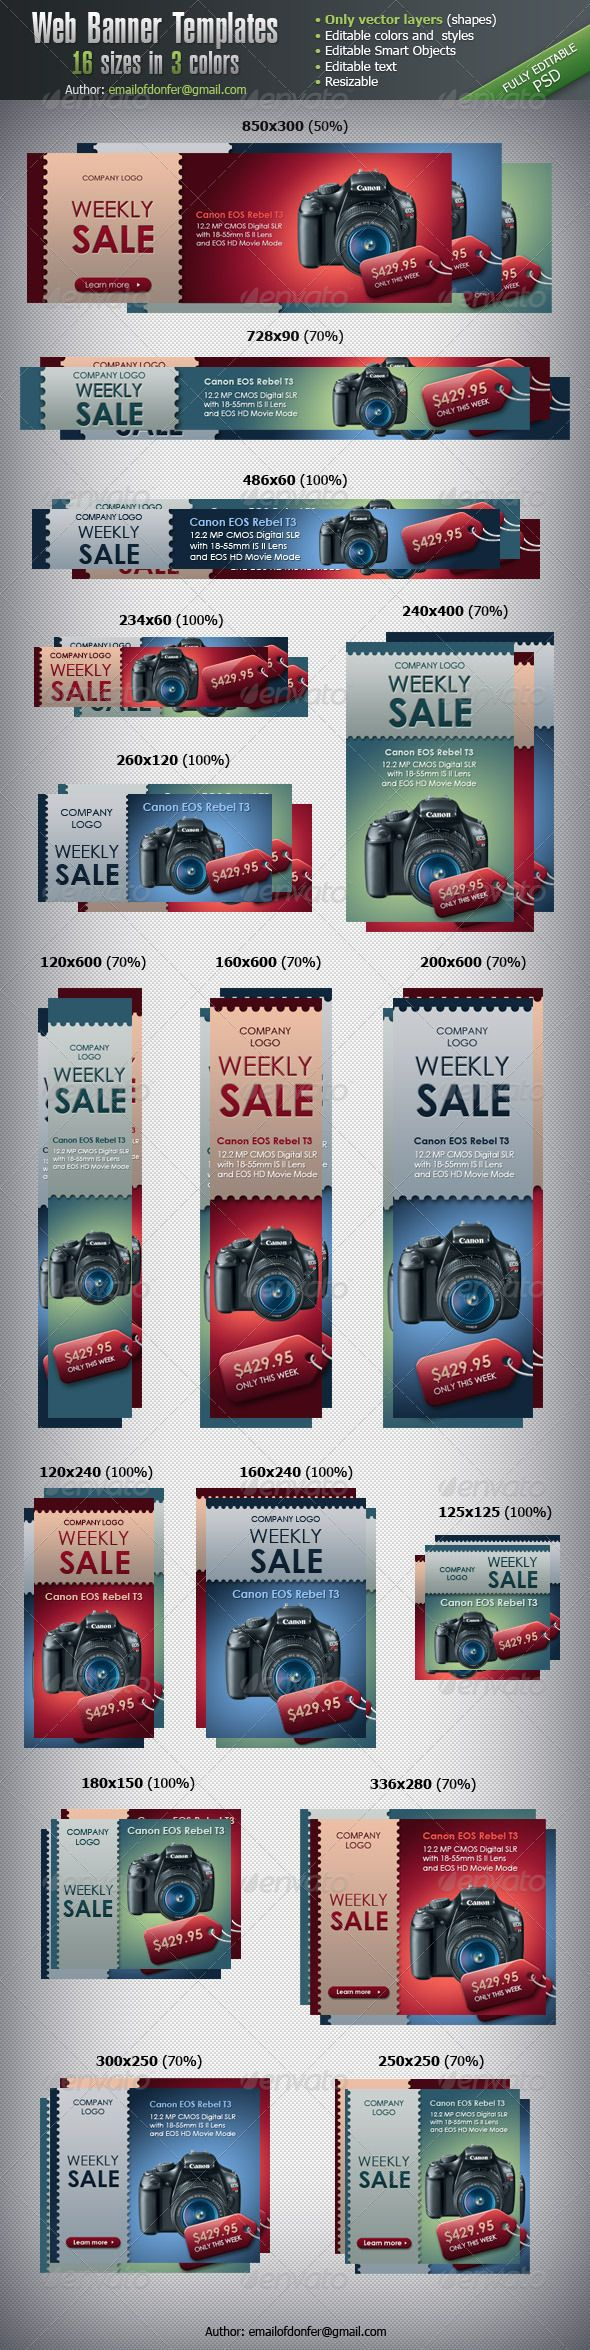 Web Banner Template PSD | Buy and Download: http://graphicriver.net/item/web-banner-templates-16-sizes/3202760?WT.ac=category_thumb&WT.z_author=donfer&ref=ksioks